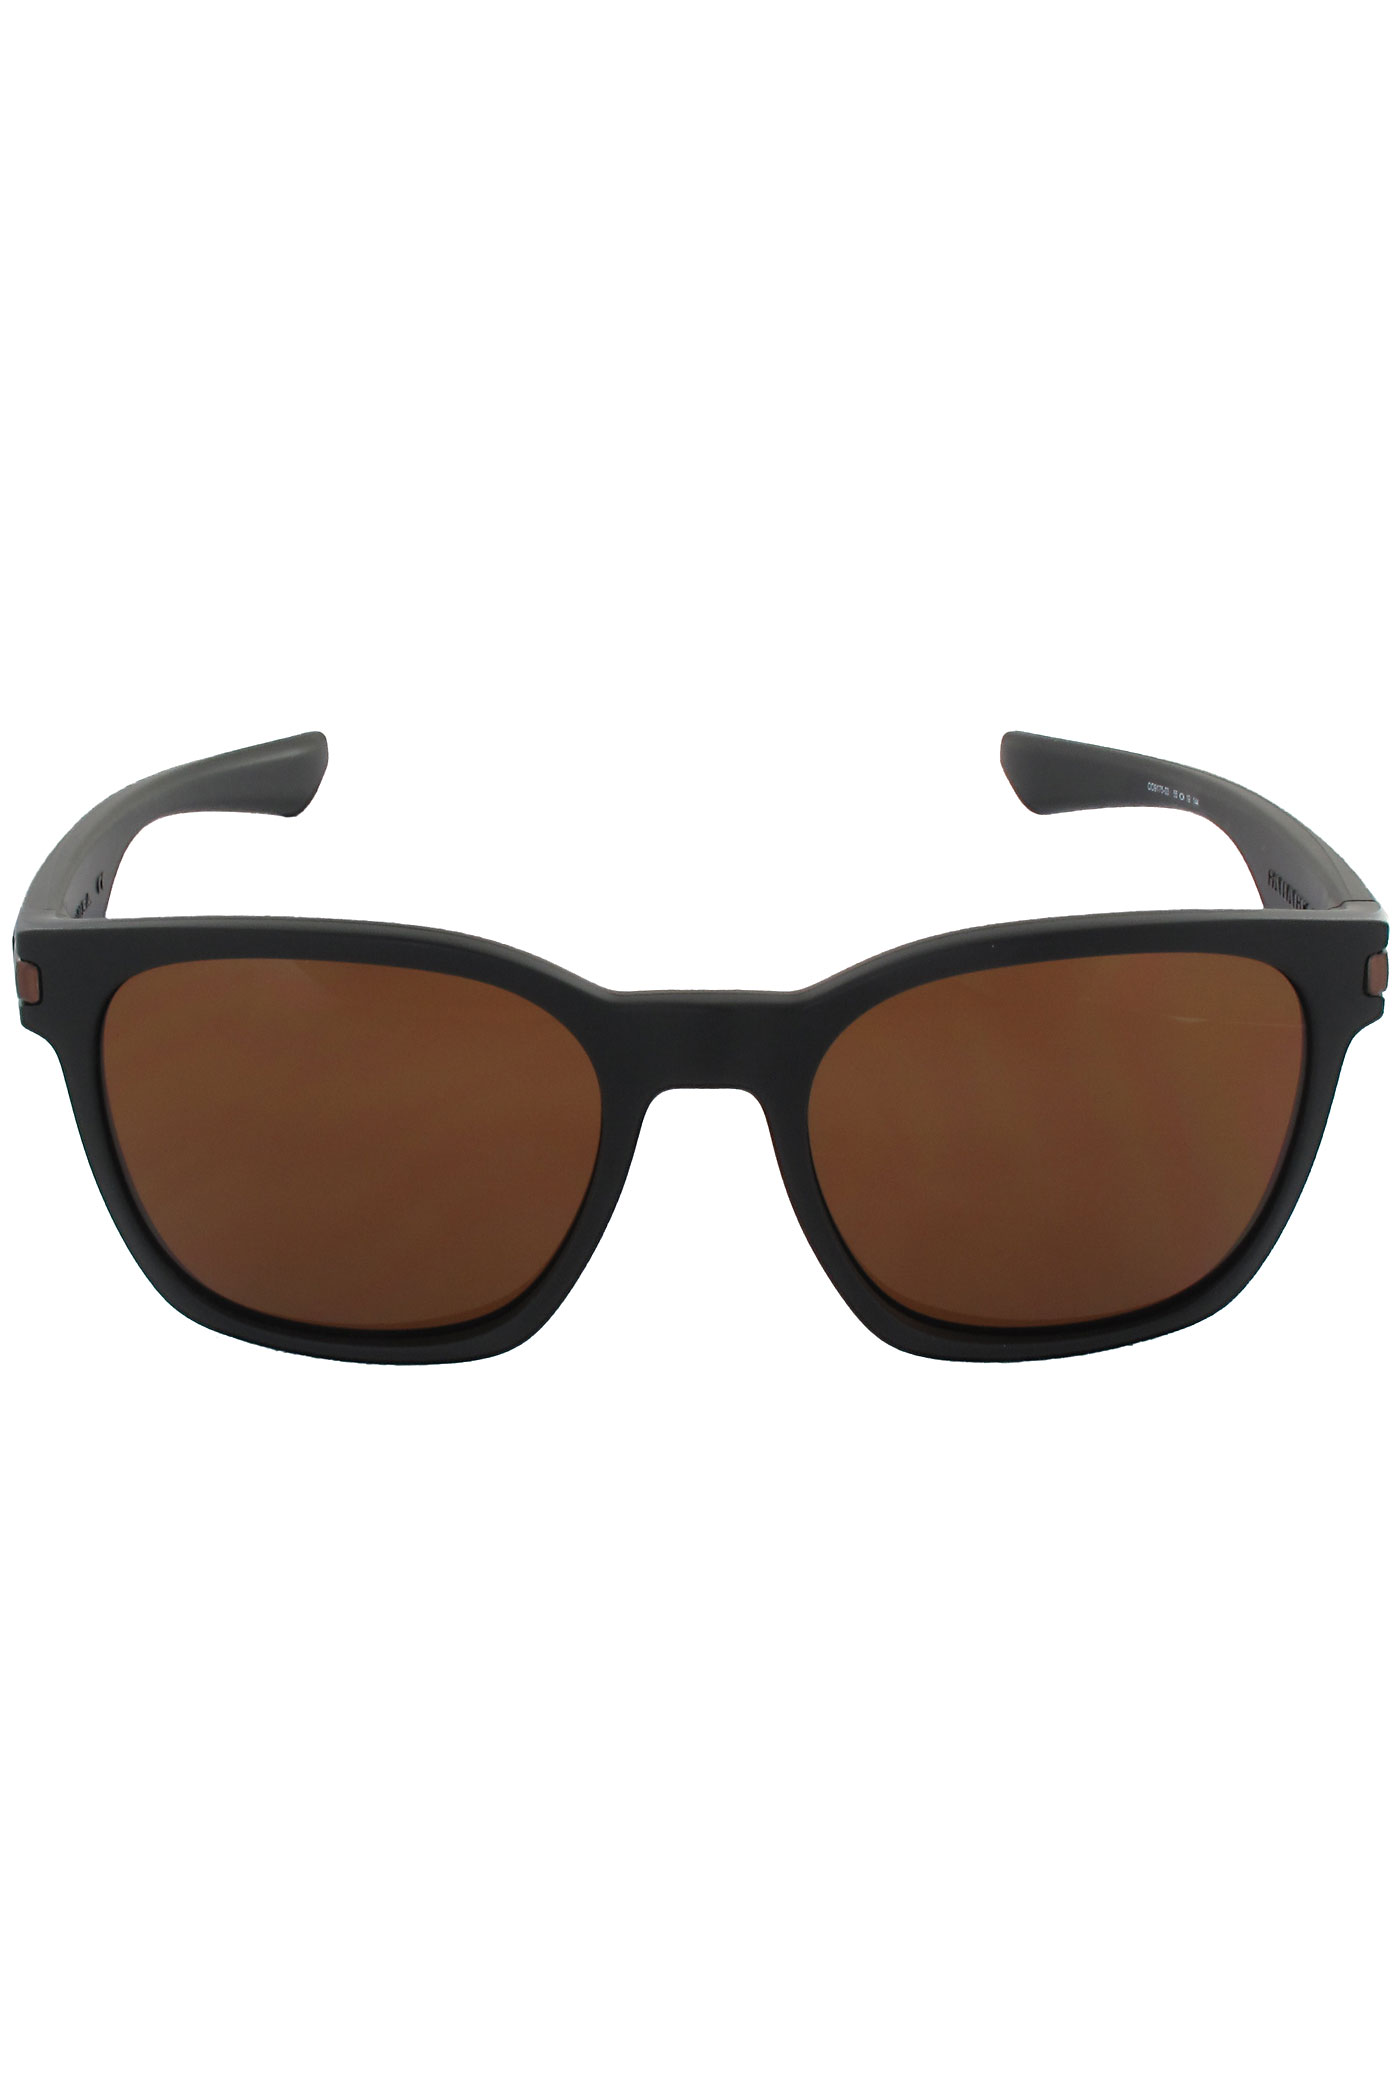 a690f056dbb australia discount oakley garage rock wood 83e14 af236